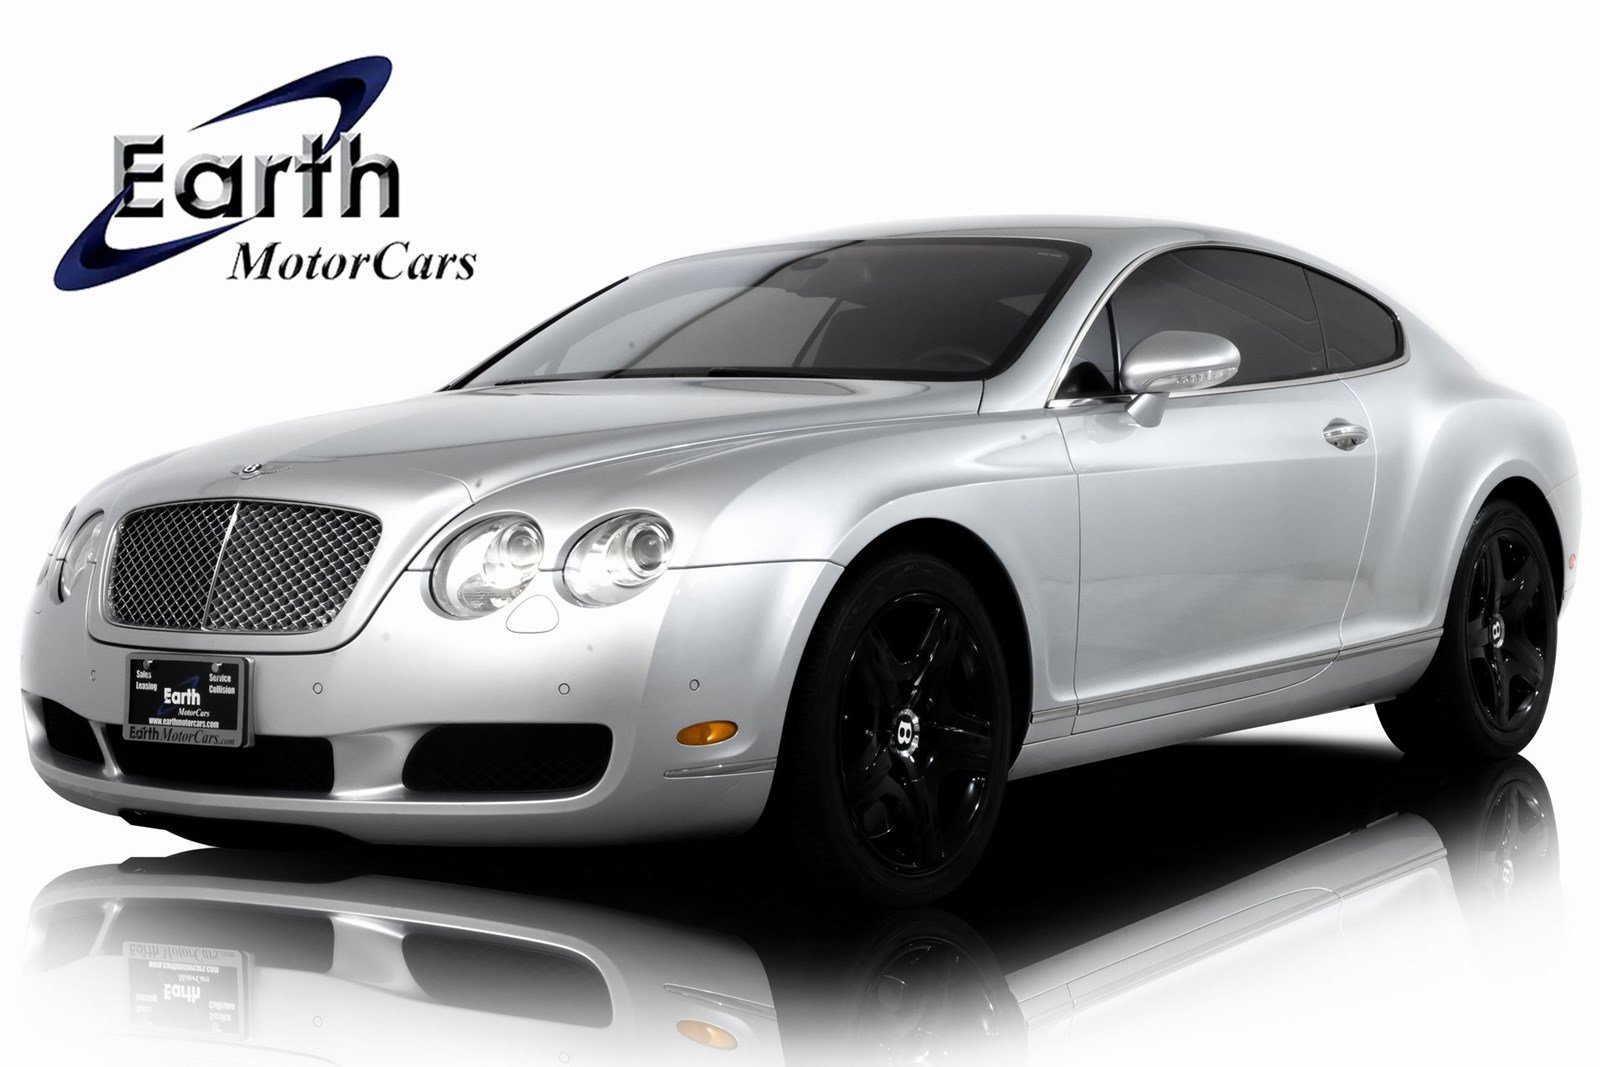 2004 Bentley Continental GT Coupe image